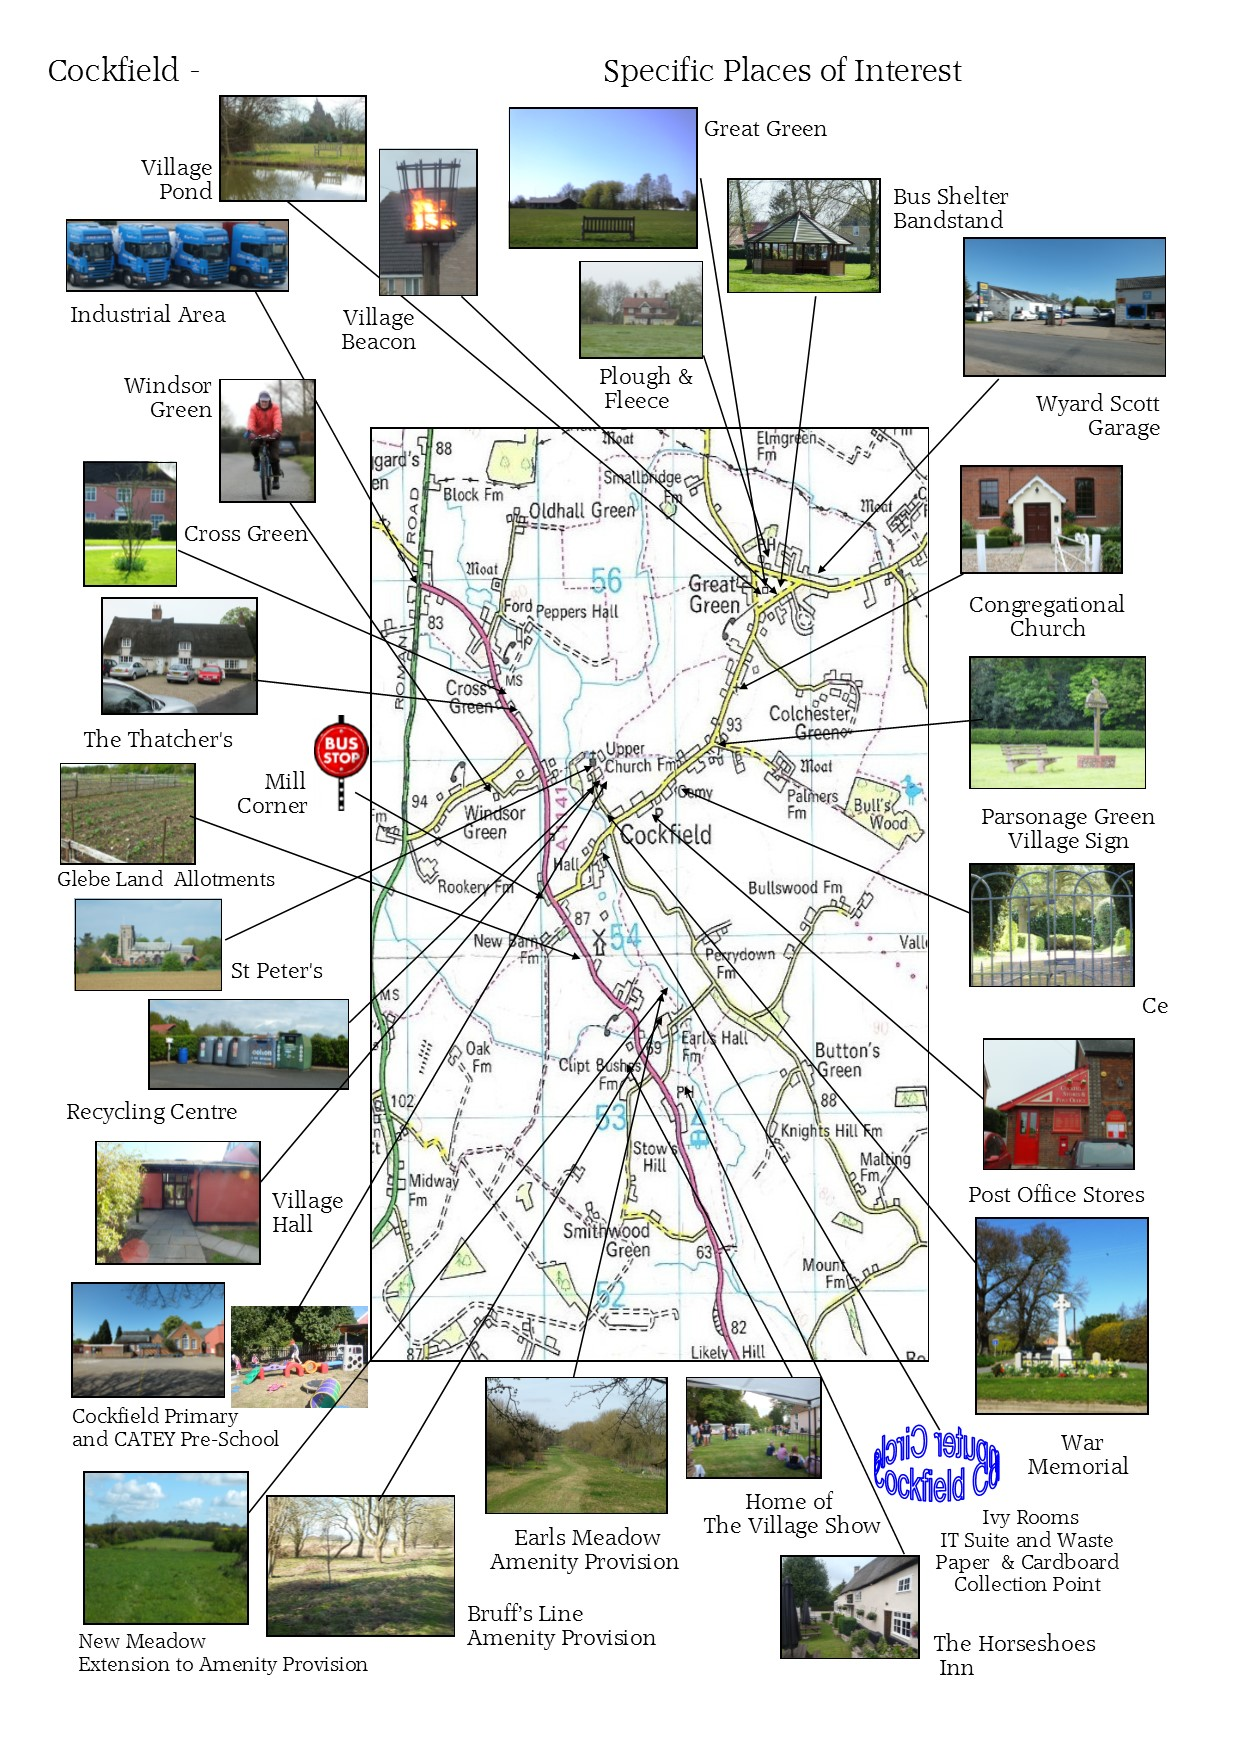 Places of interest map